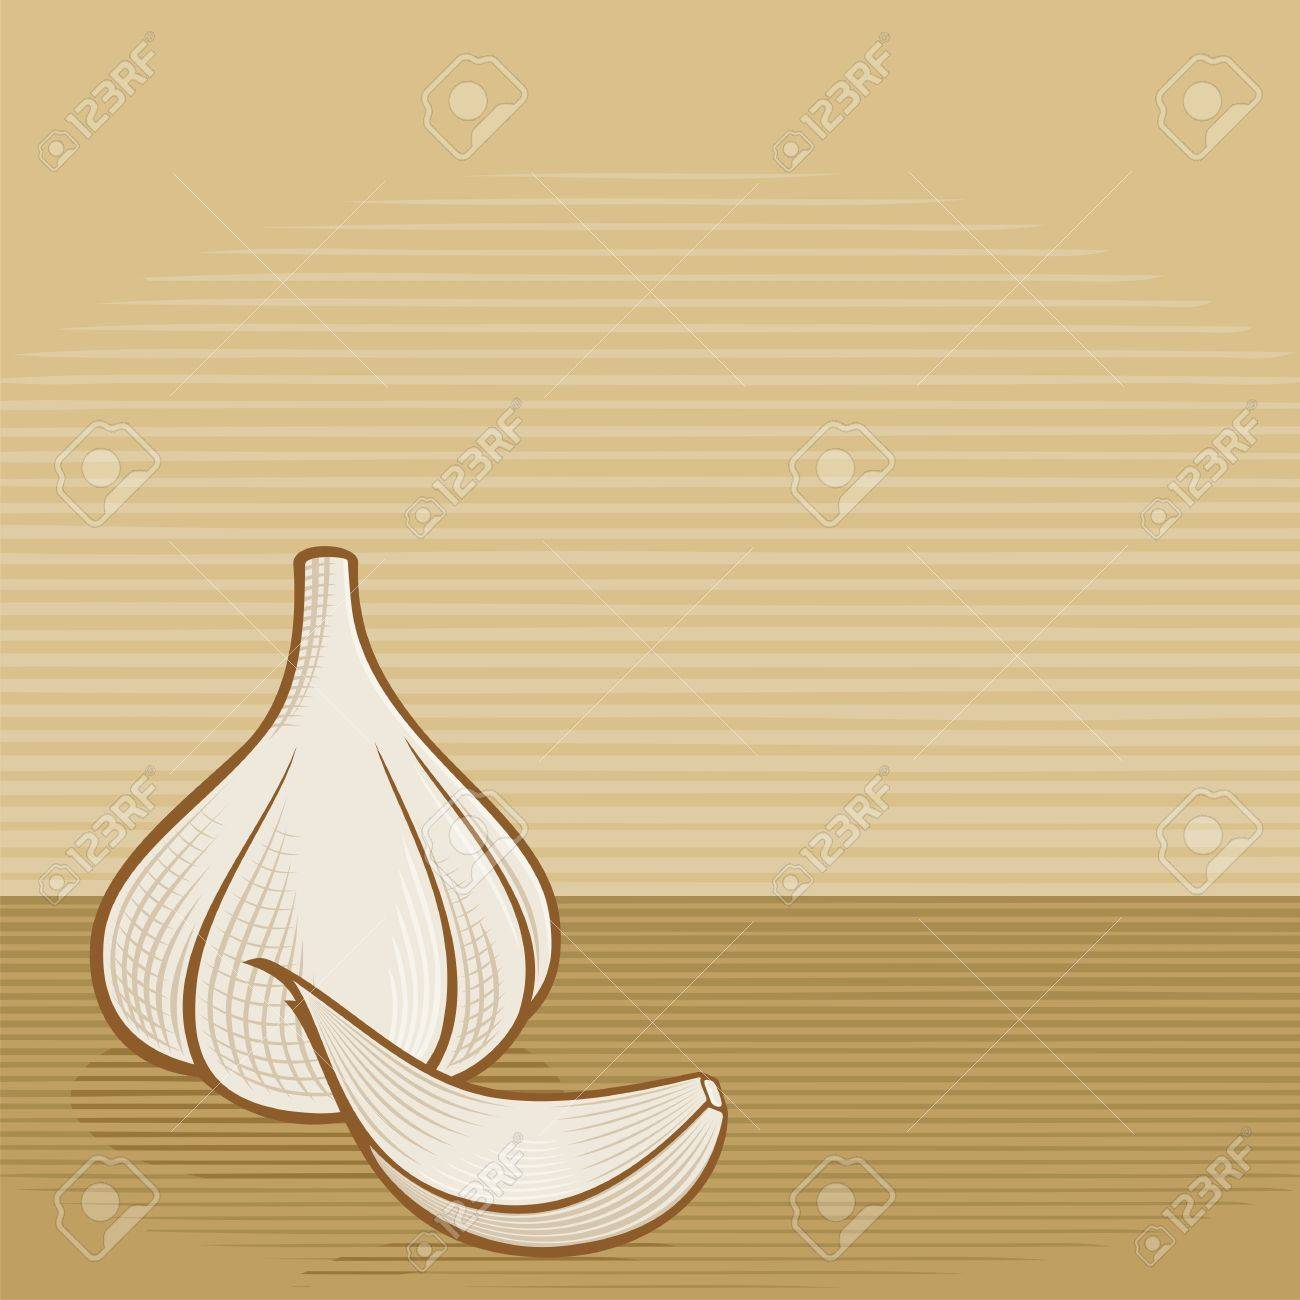 Garlic bulb with clove icons with woodcut shading on beige background. - 13108682